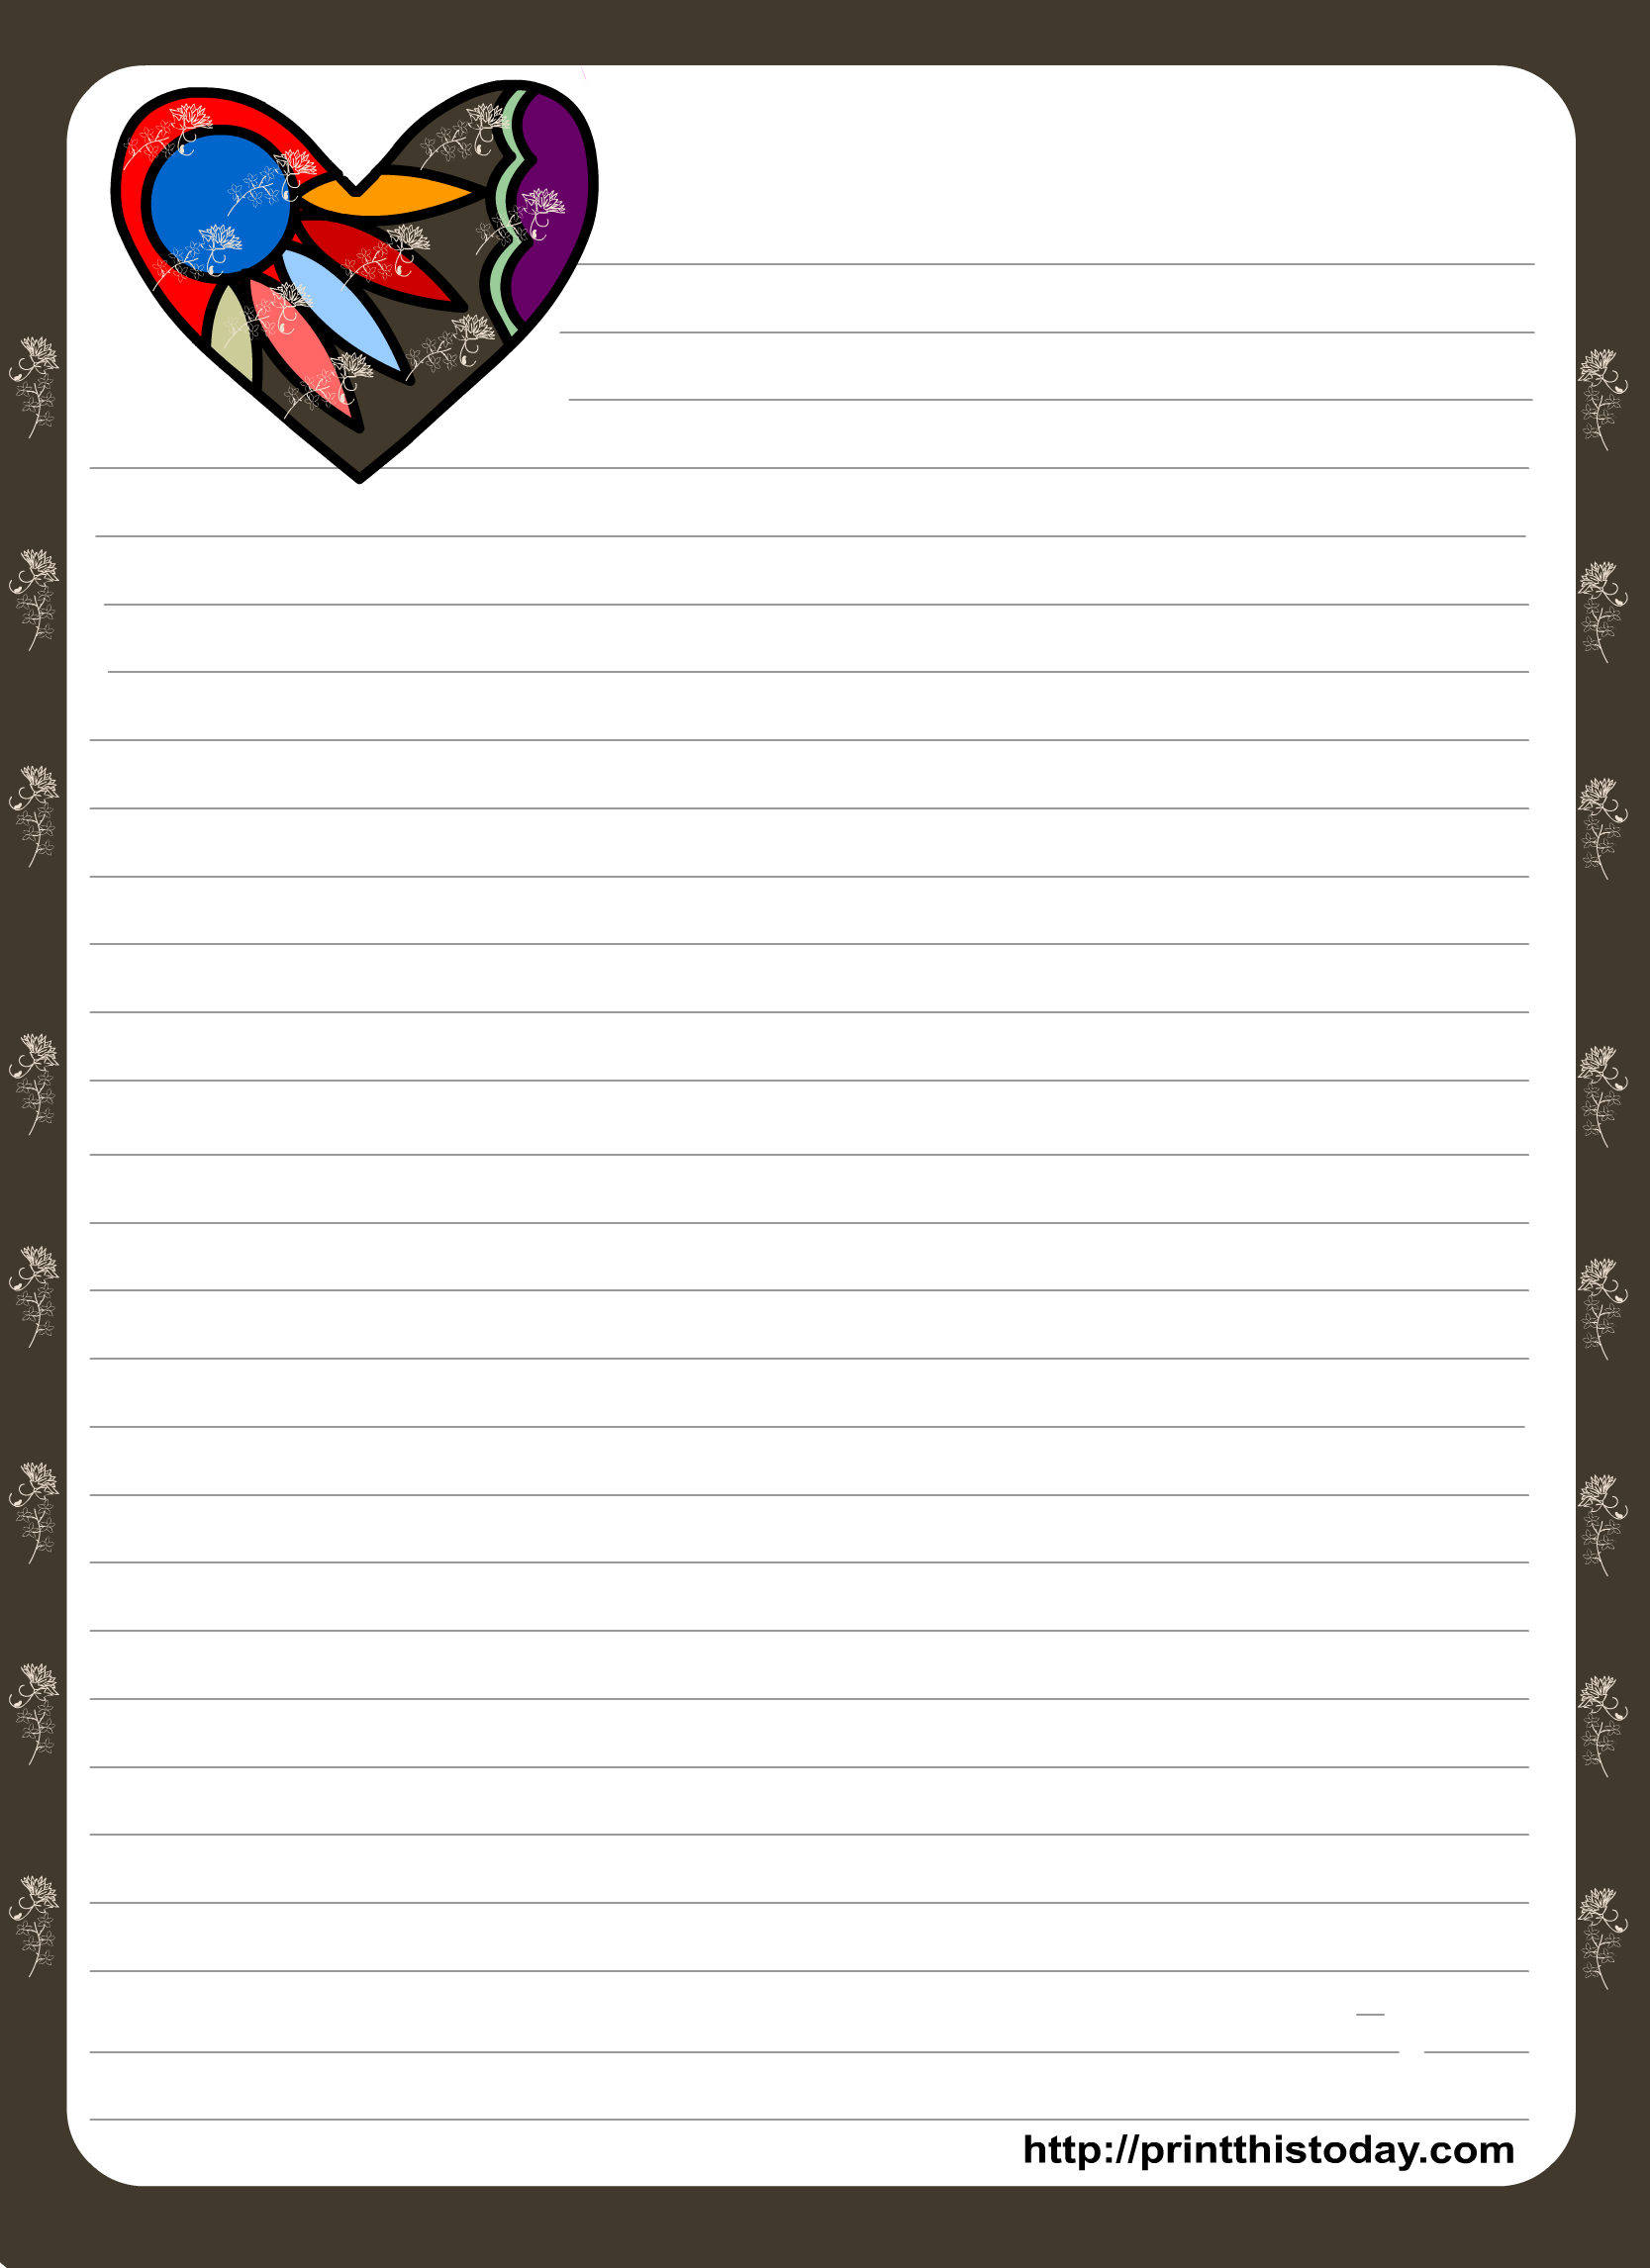 Love Letter Pad Stationery With Colorful Heart | Organization - Free Printable Stationary